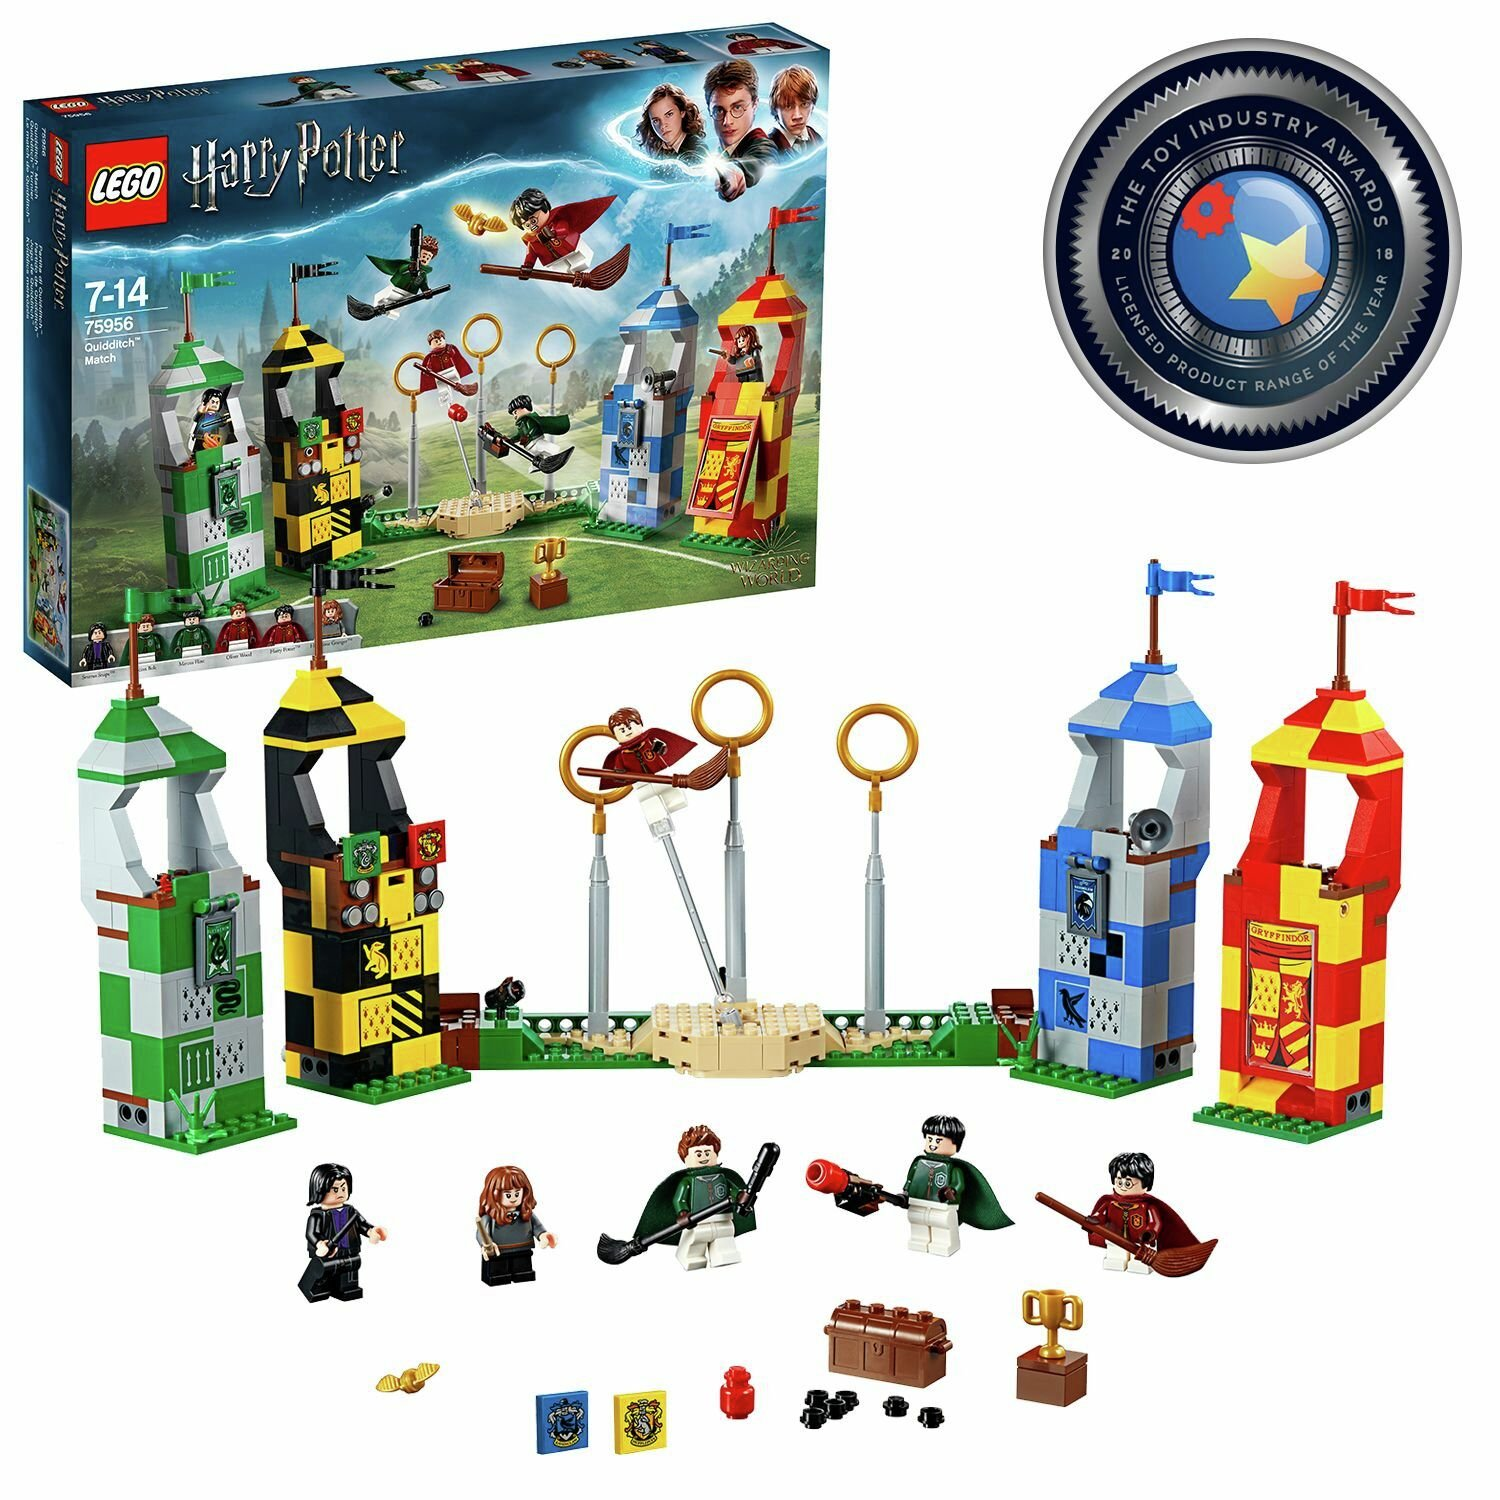 LEGO Harry Potter Quidditch Match Building Set - 75956